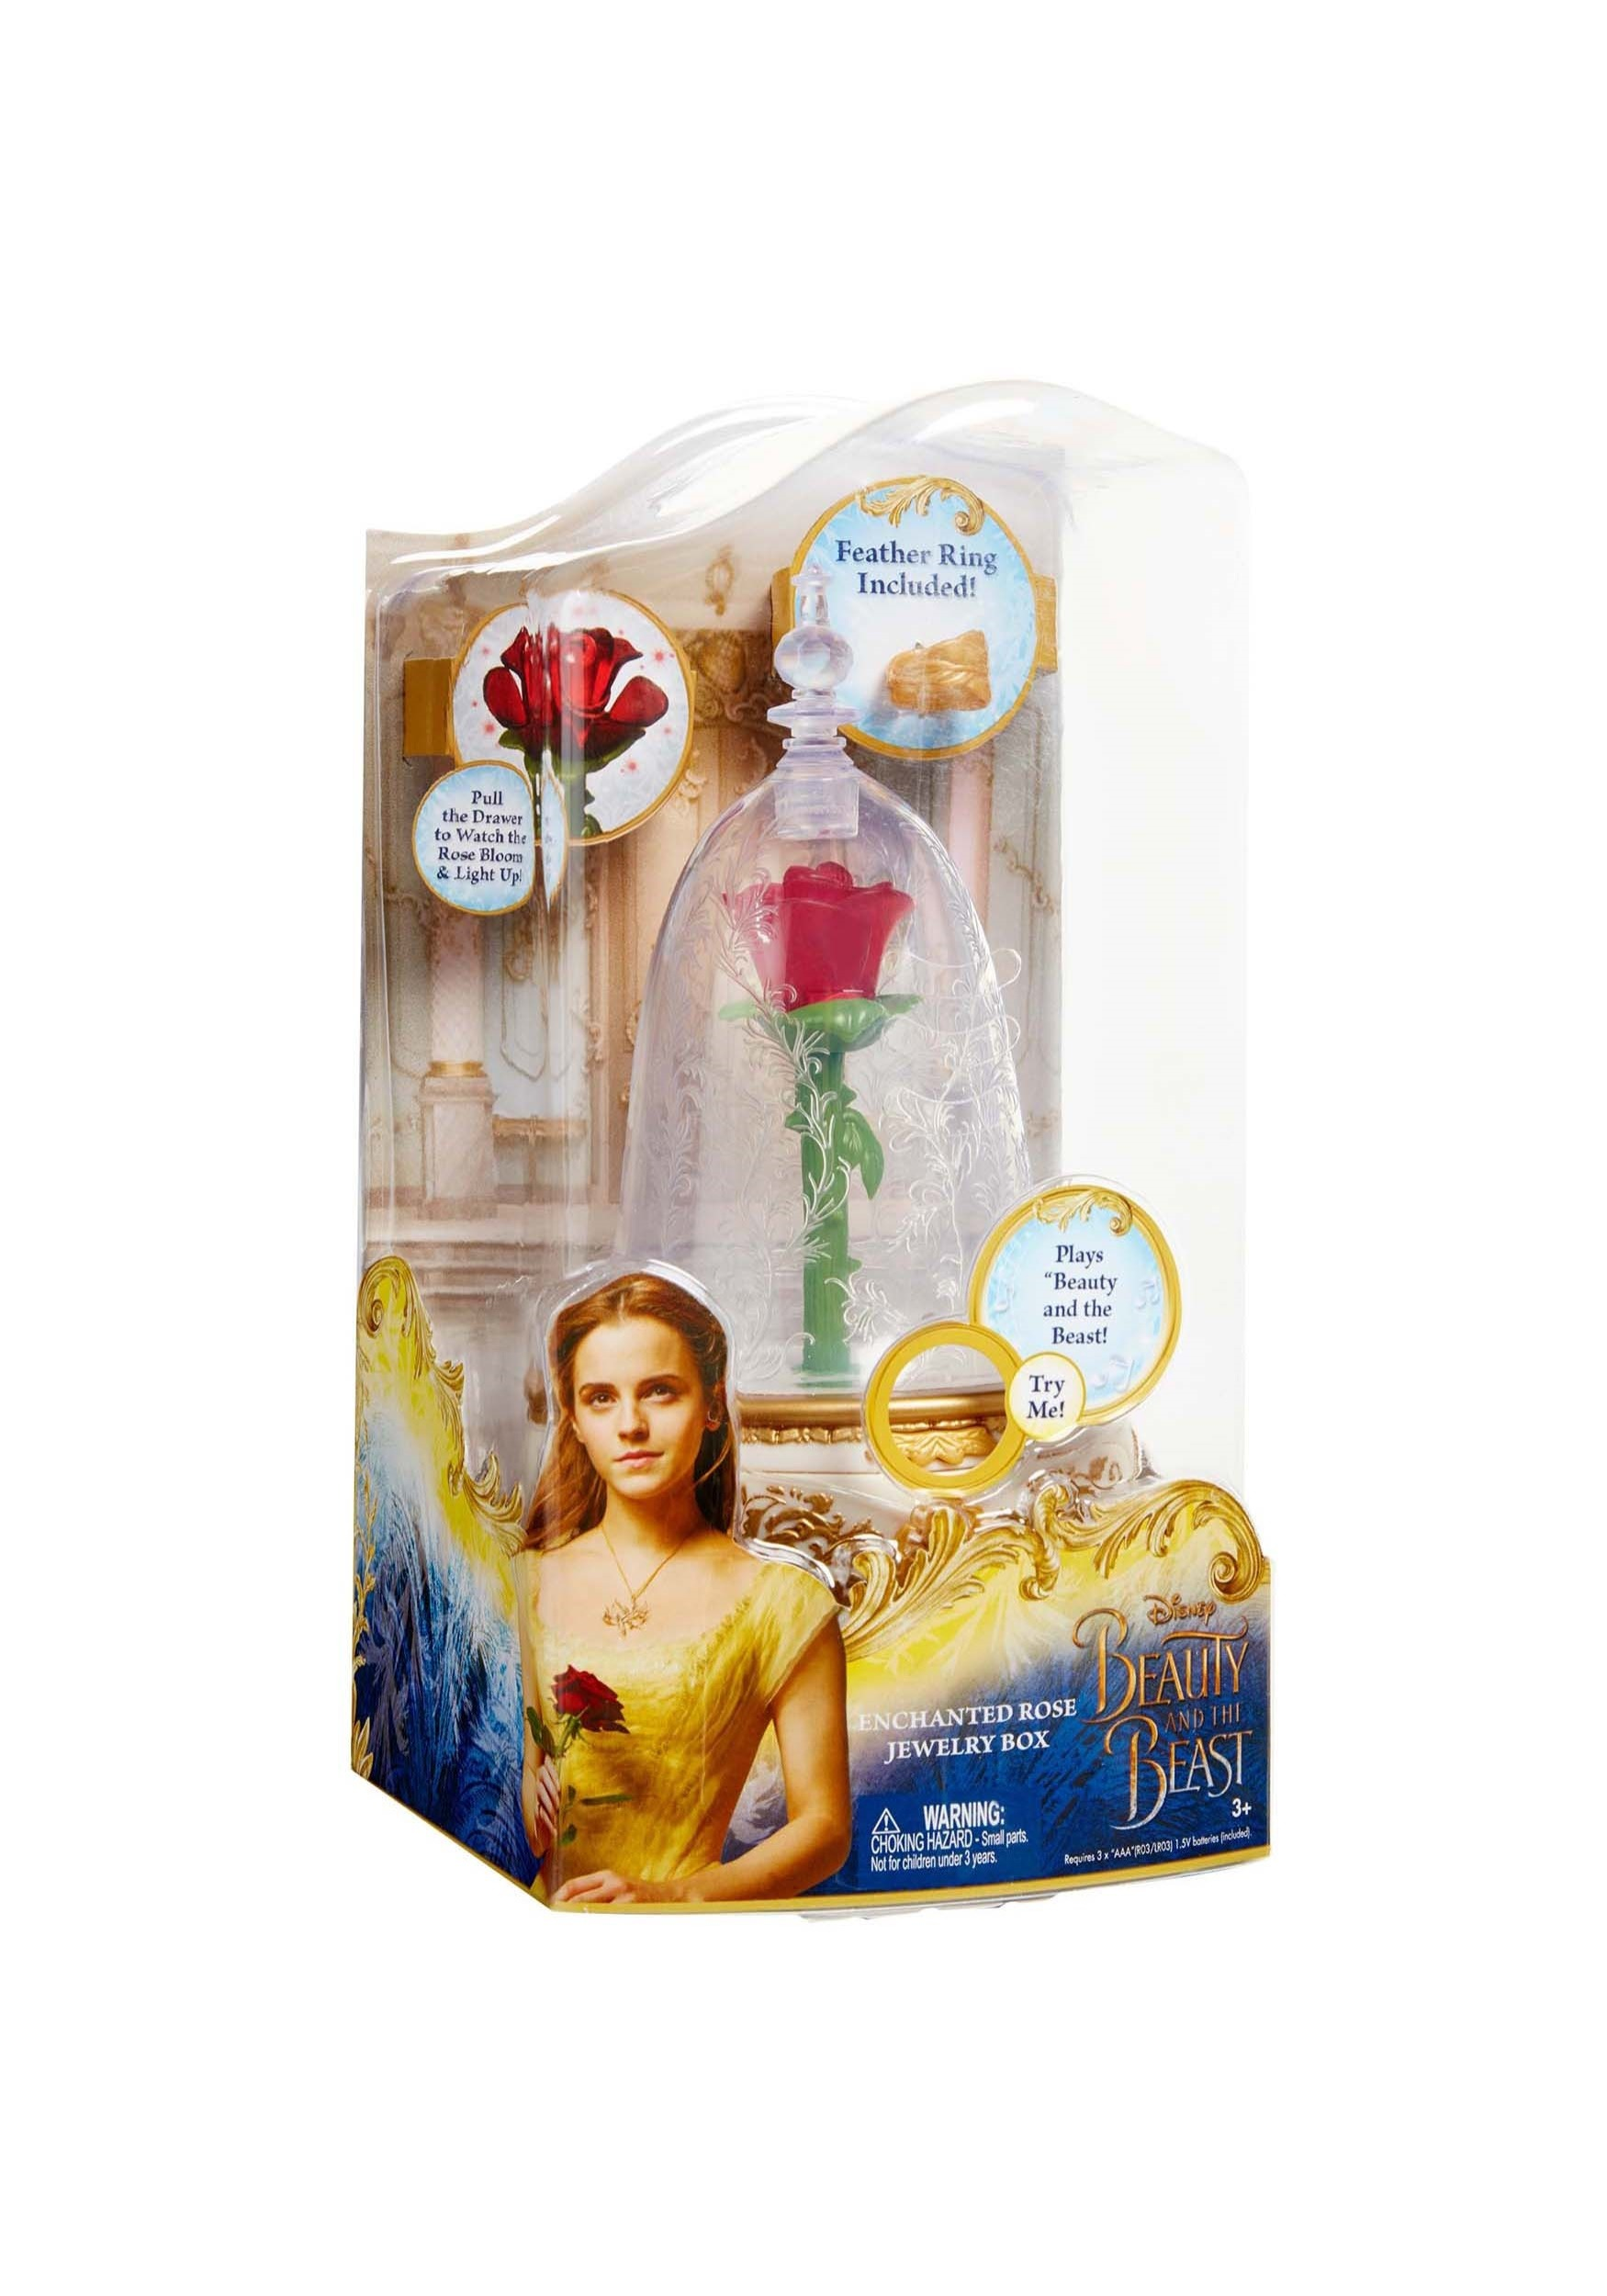 Disney Beauty and the Beast Jewelry Box (Enchanted Rose) Disney Beauty and the Beast Jewelry Box (Enchanted Rose) Description: Disney's Beauty and the Beast is the fantastic journey of Belle, a bright, beautiful and independent young woman who is taken prisoner by a beast in his castle.